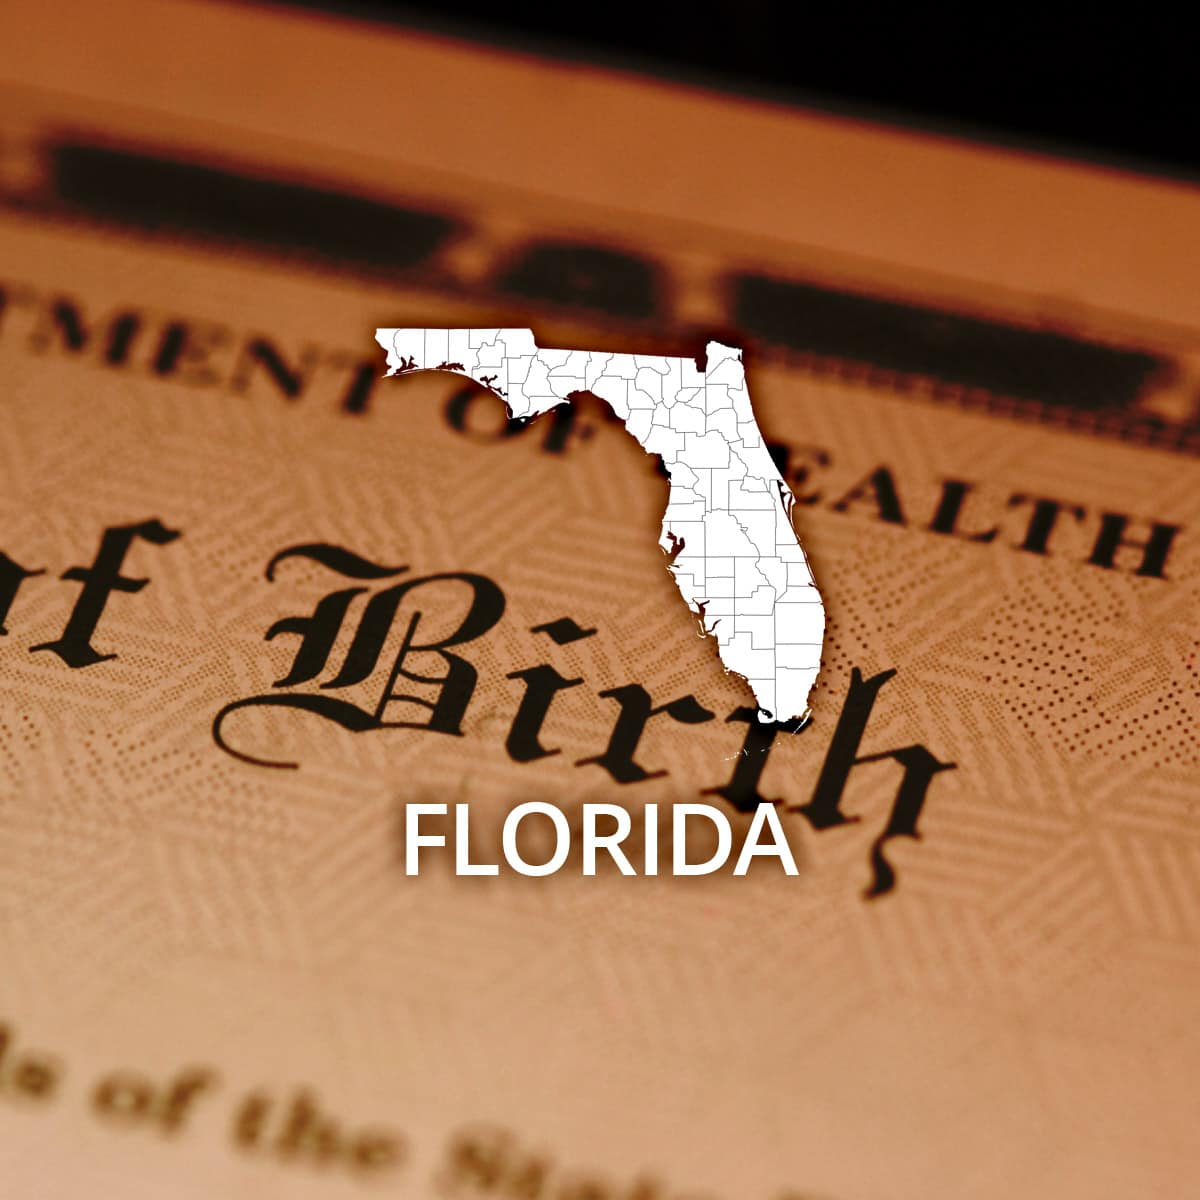 Where to Obtain a Florida Birth Certificate